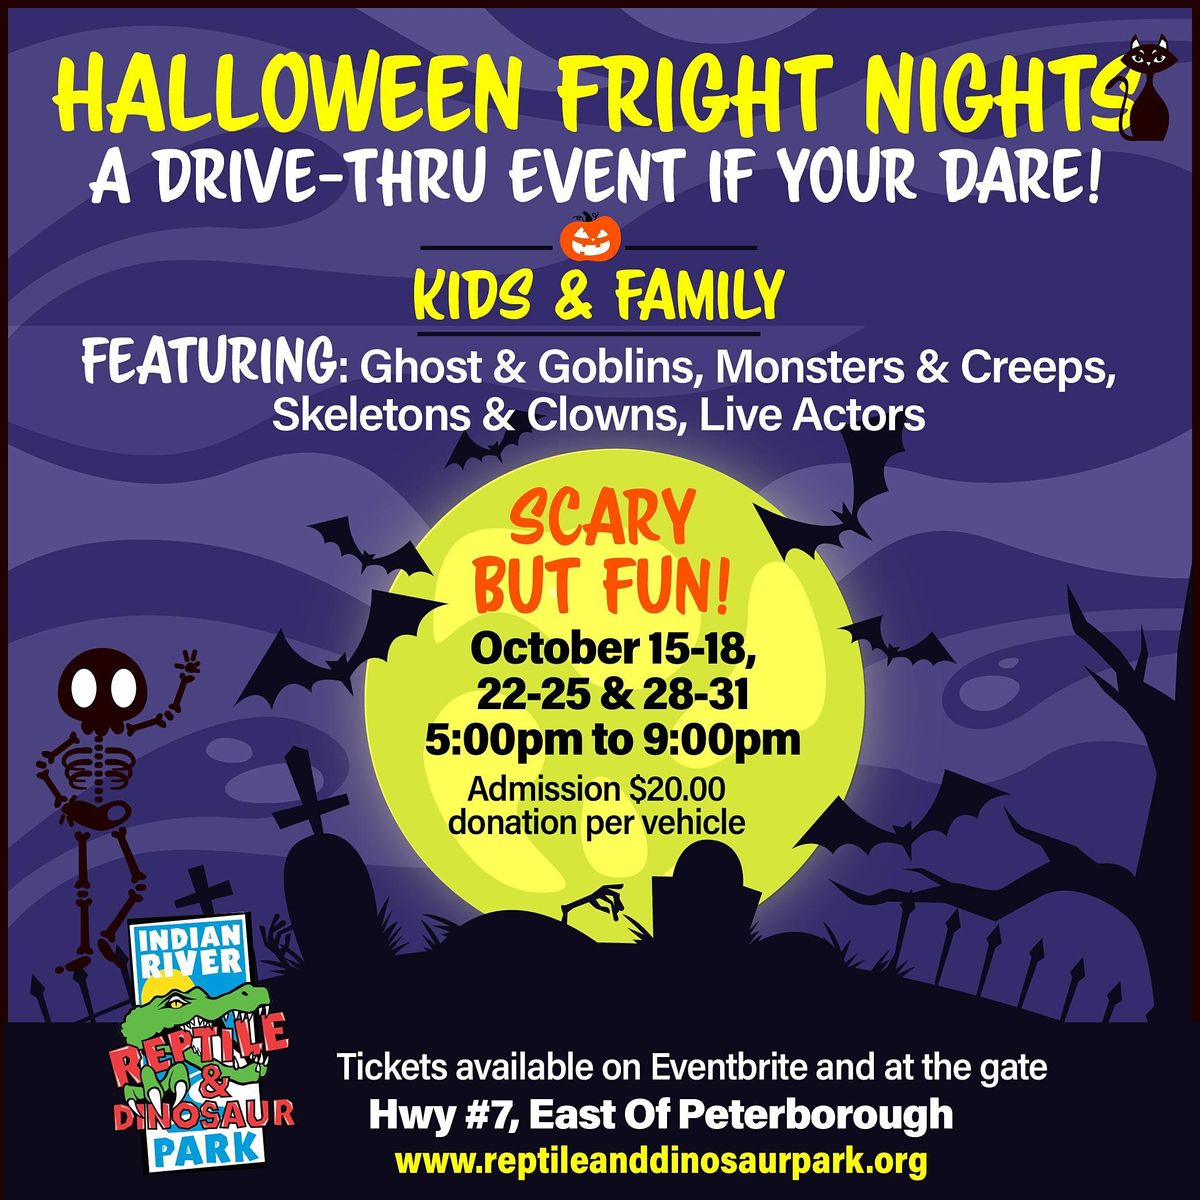 Halloween Events Today Oct 29th 2020 Halloween Fright Nights A Drive Thru Event   Thurs Oct. 29th, Thu